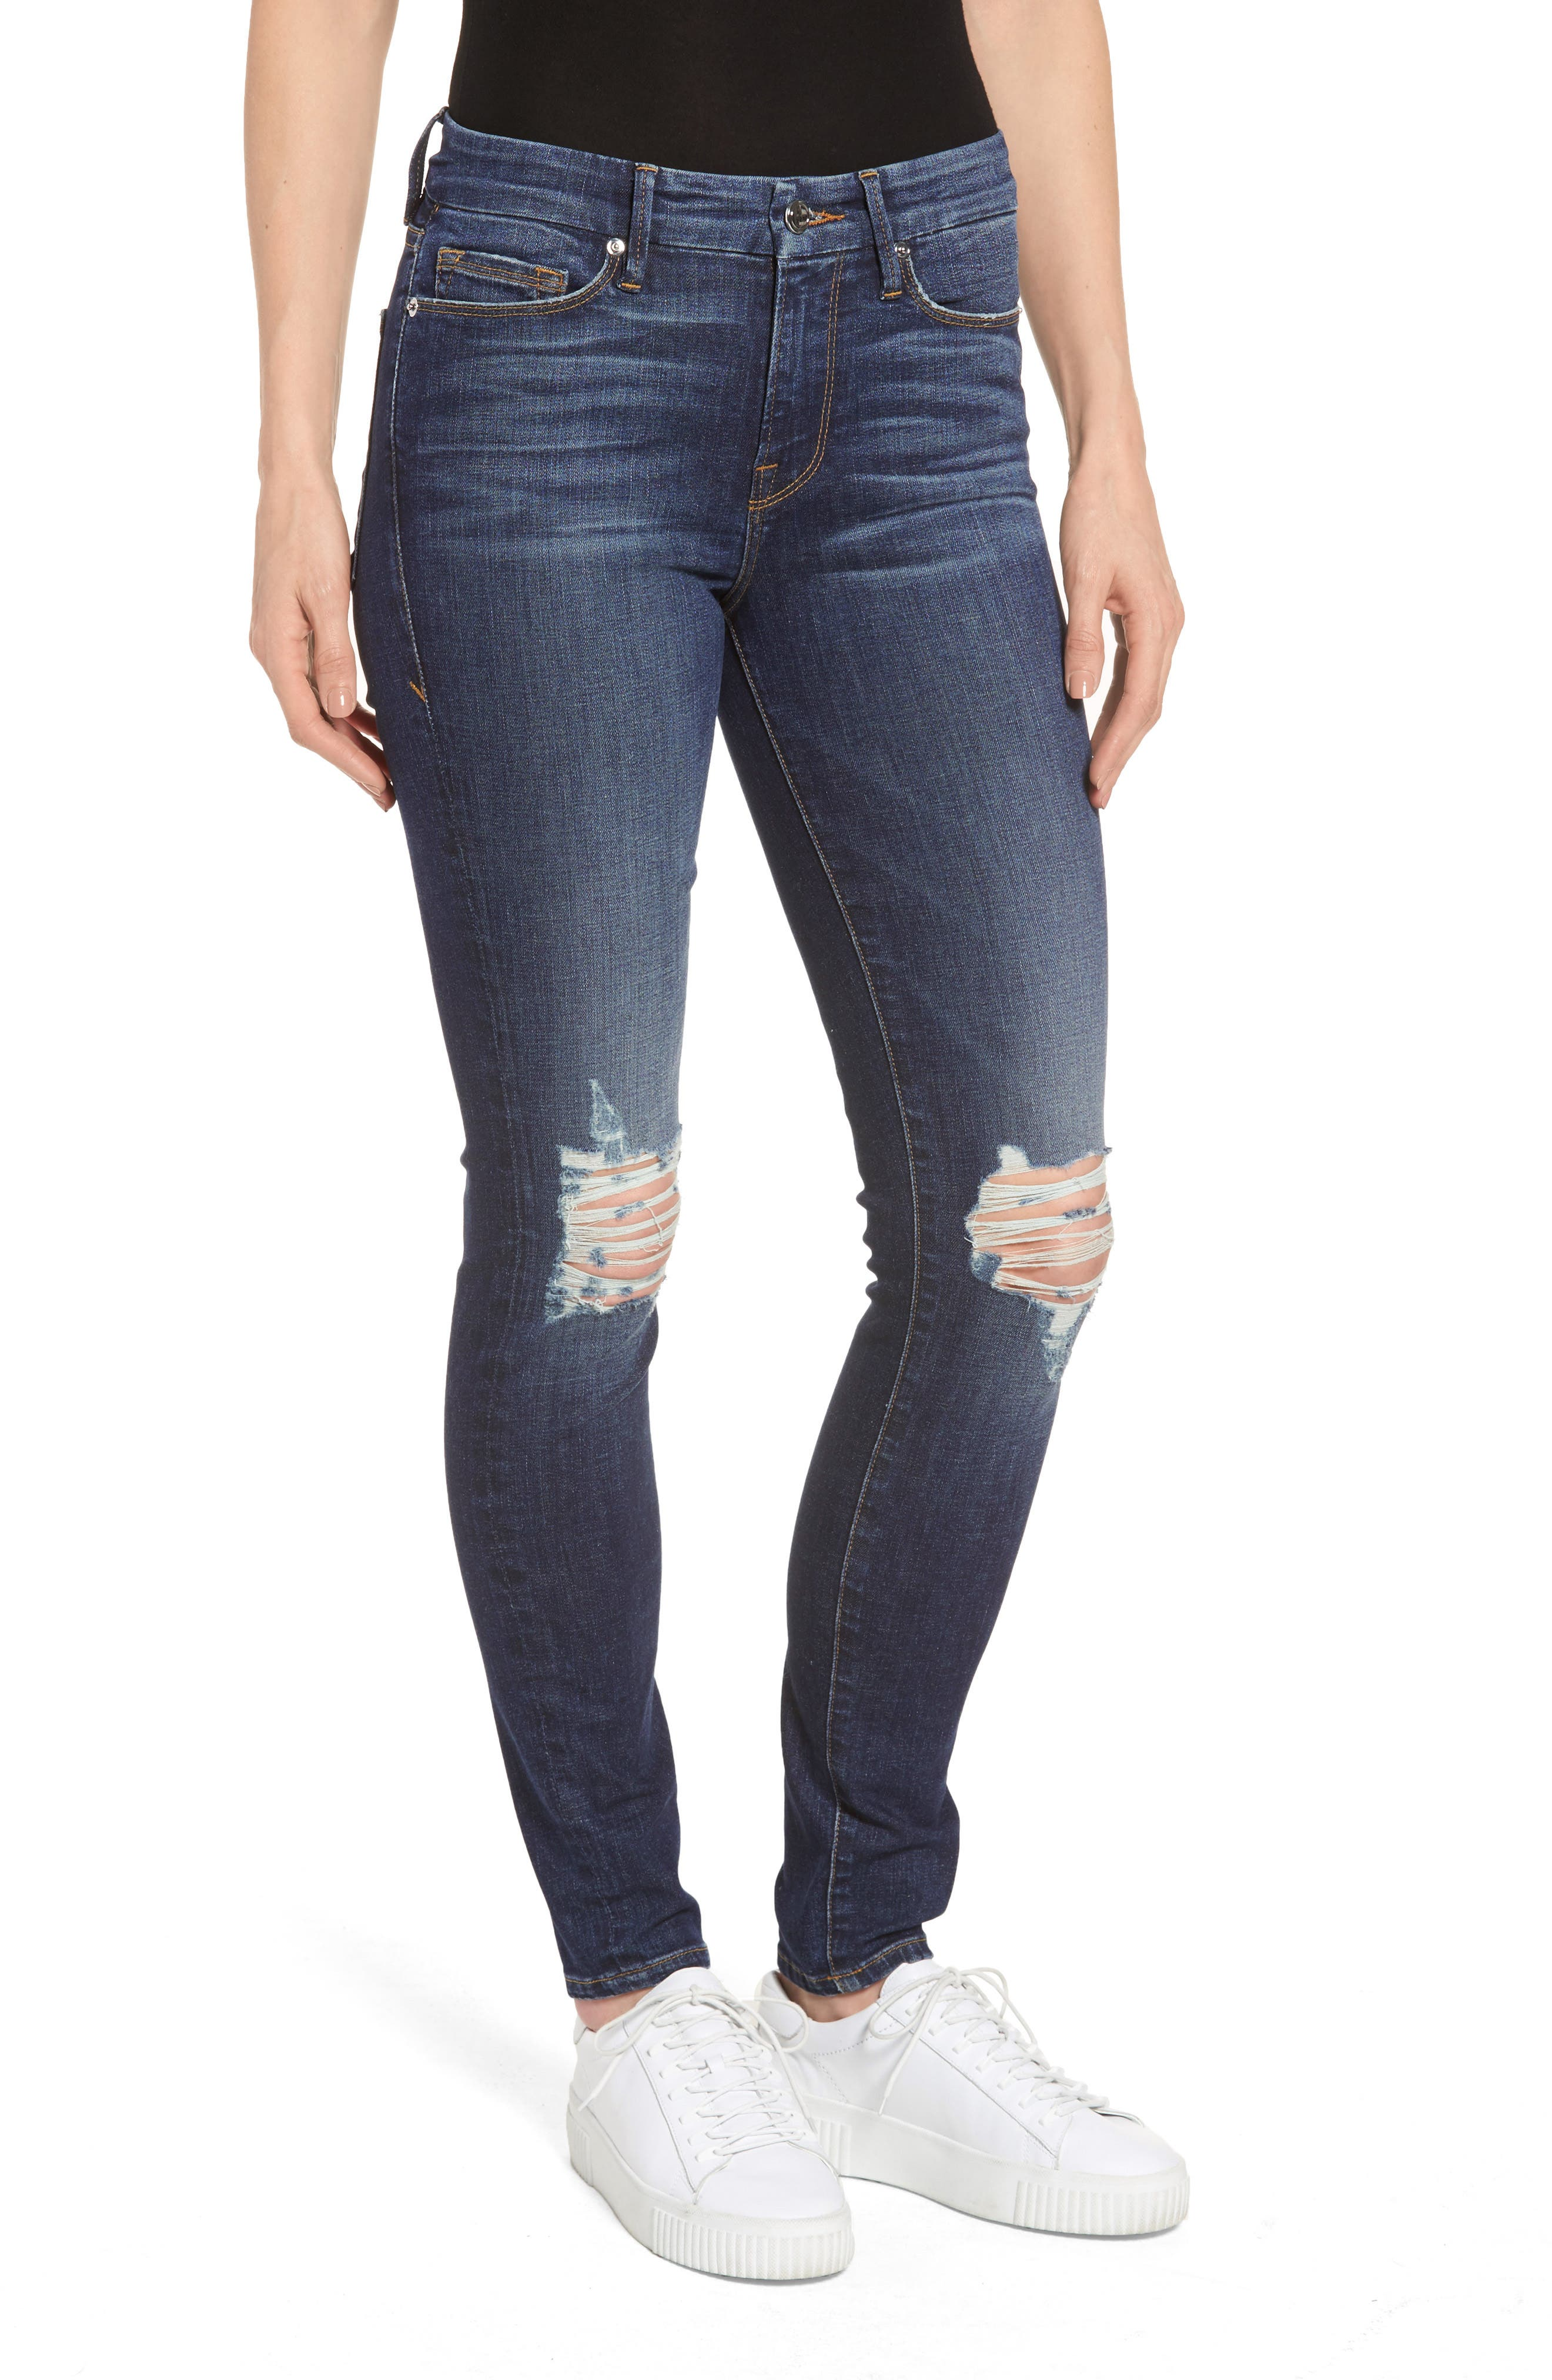 Good Legs Ripped Skinny Jeans,                             Main thumbnail 1, color,                             401